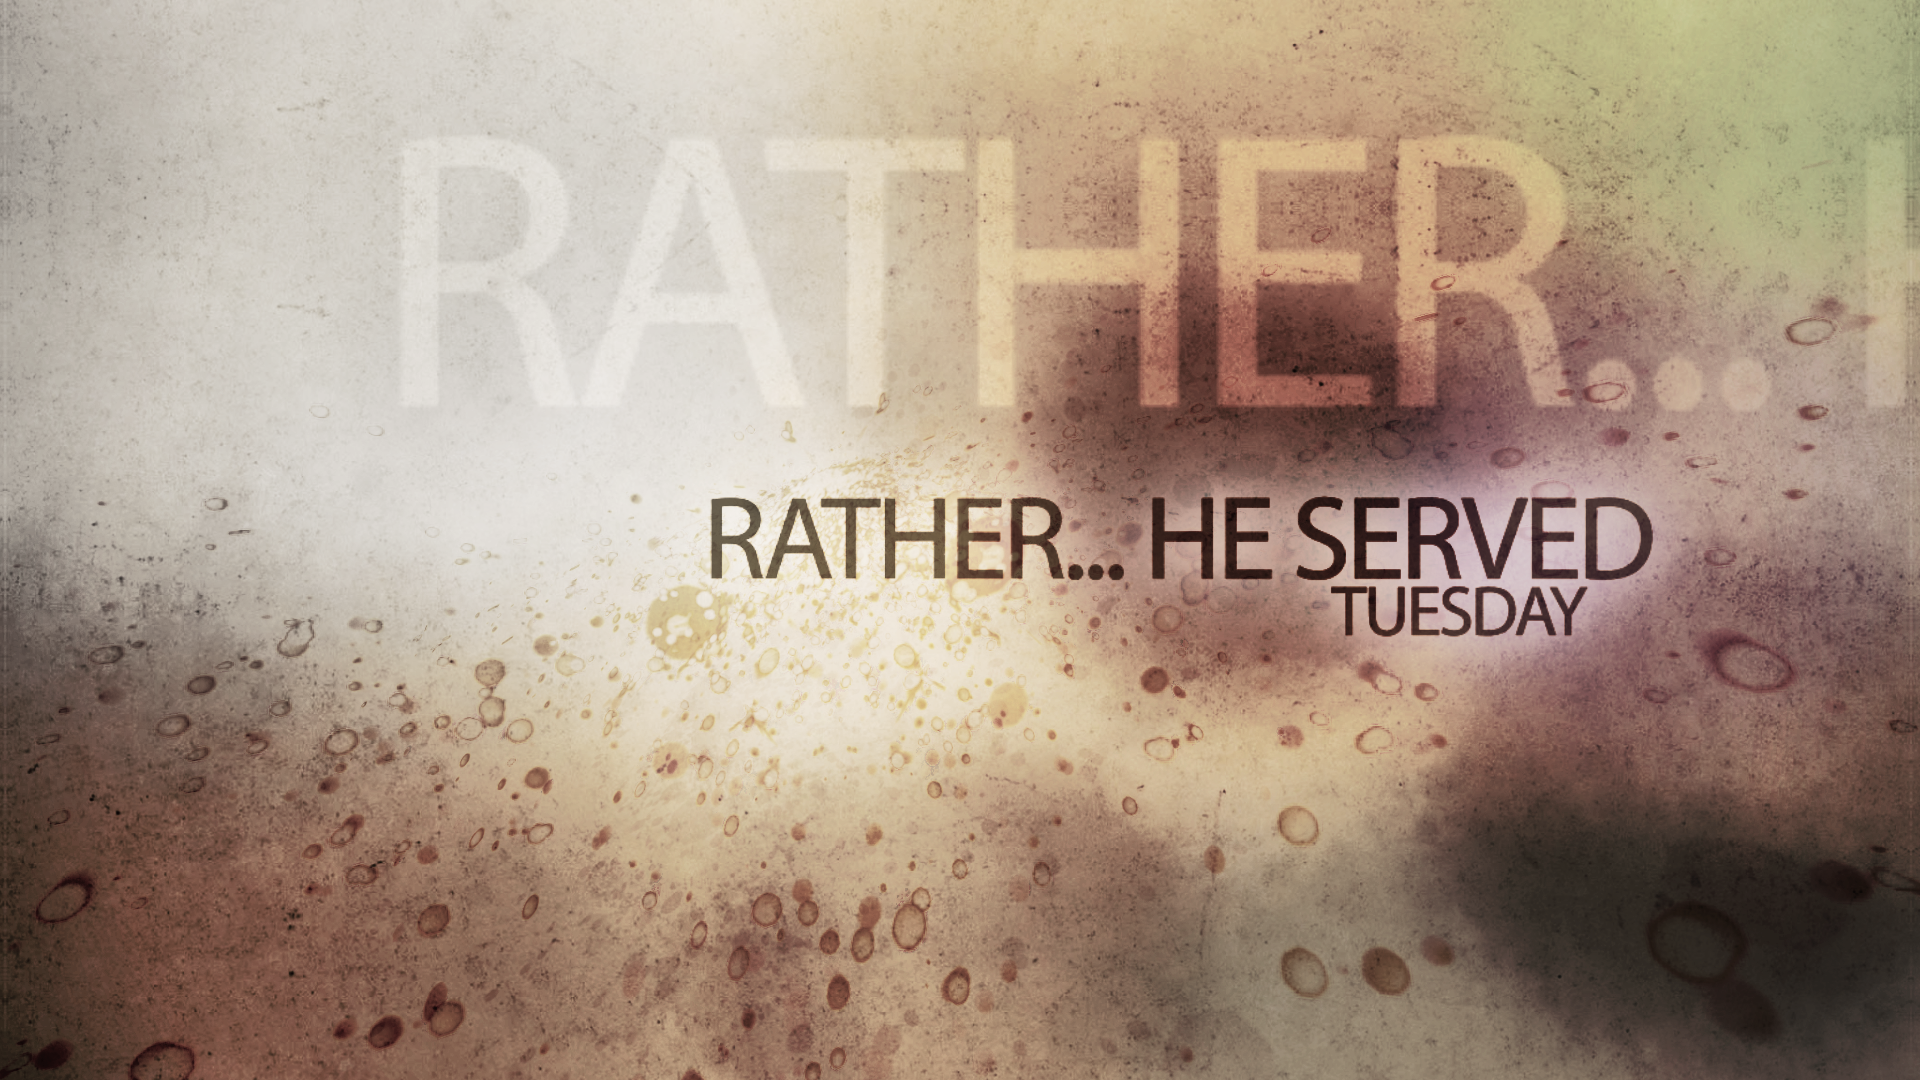 Rather... He served